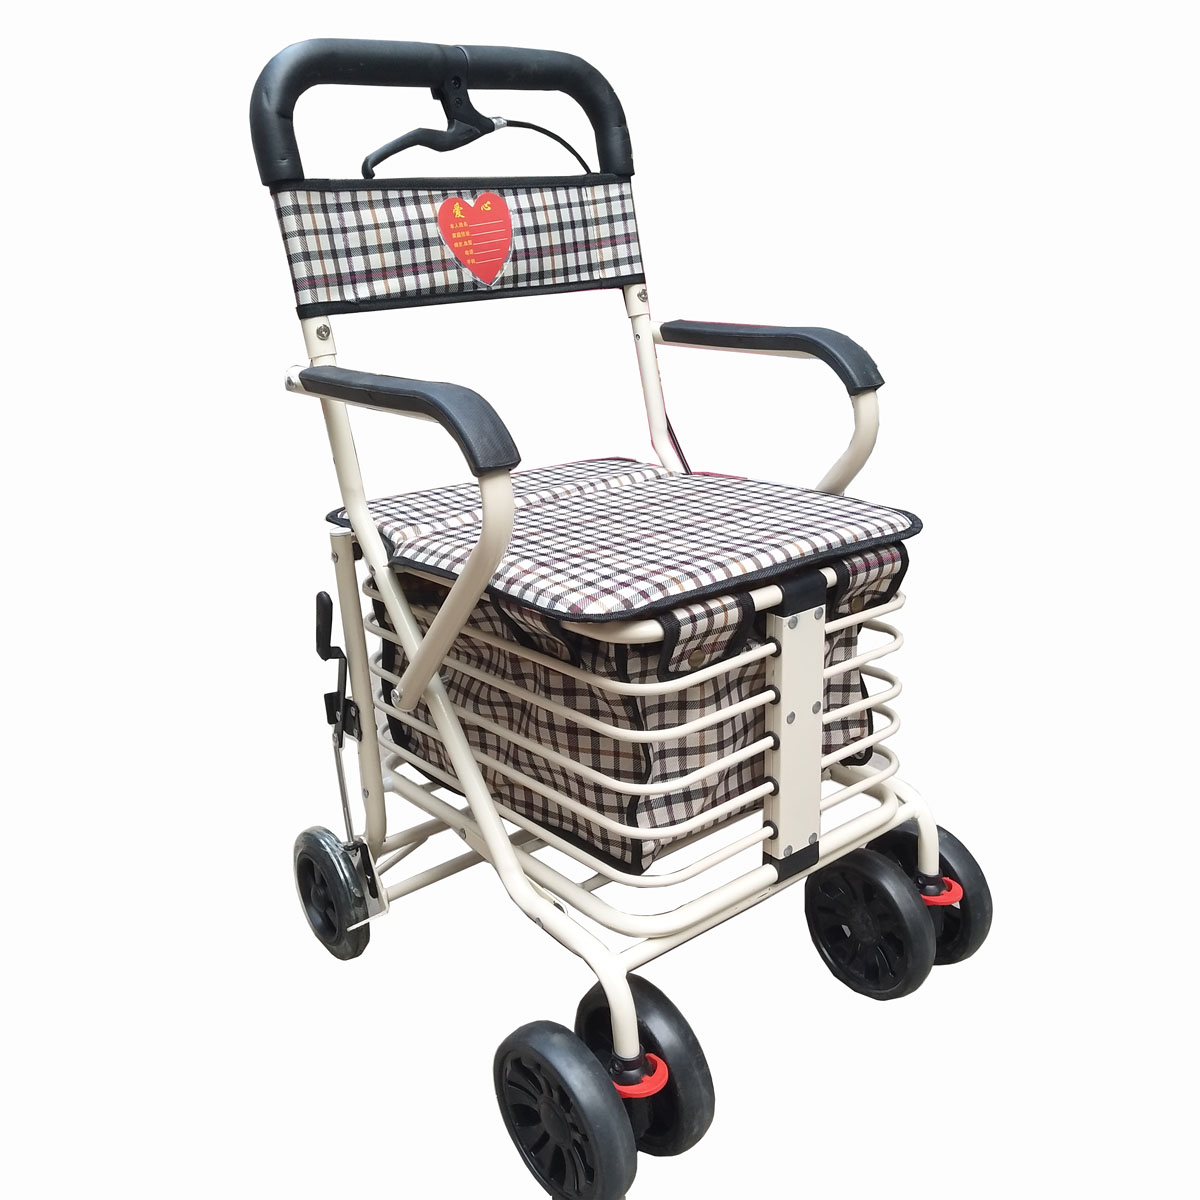 Foldable Shopping Cart For Old Man Can Be Pushed Or Sit Trolley Two BrakesTwo Front Wheel Large Shopping Trolley